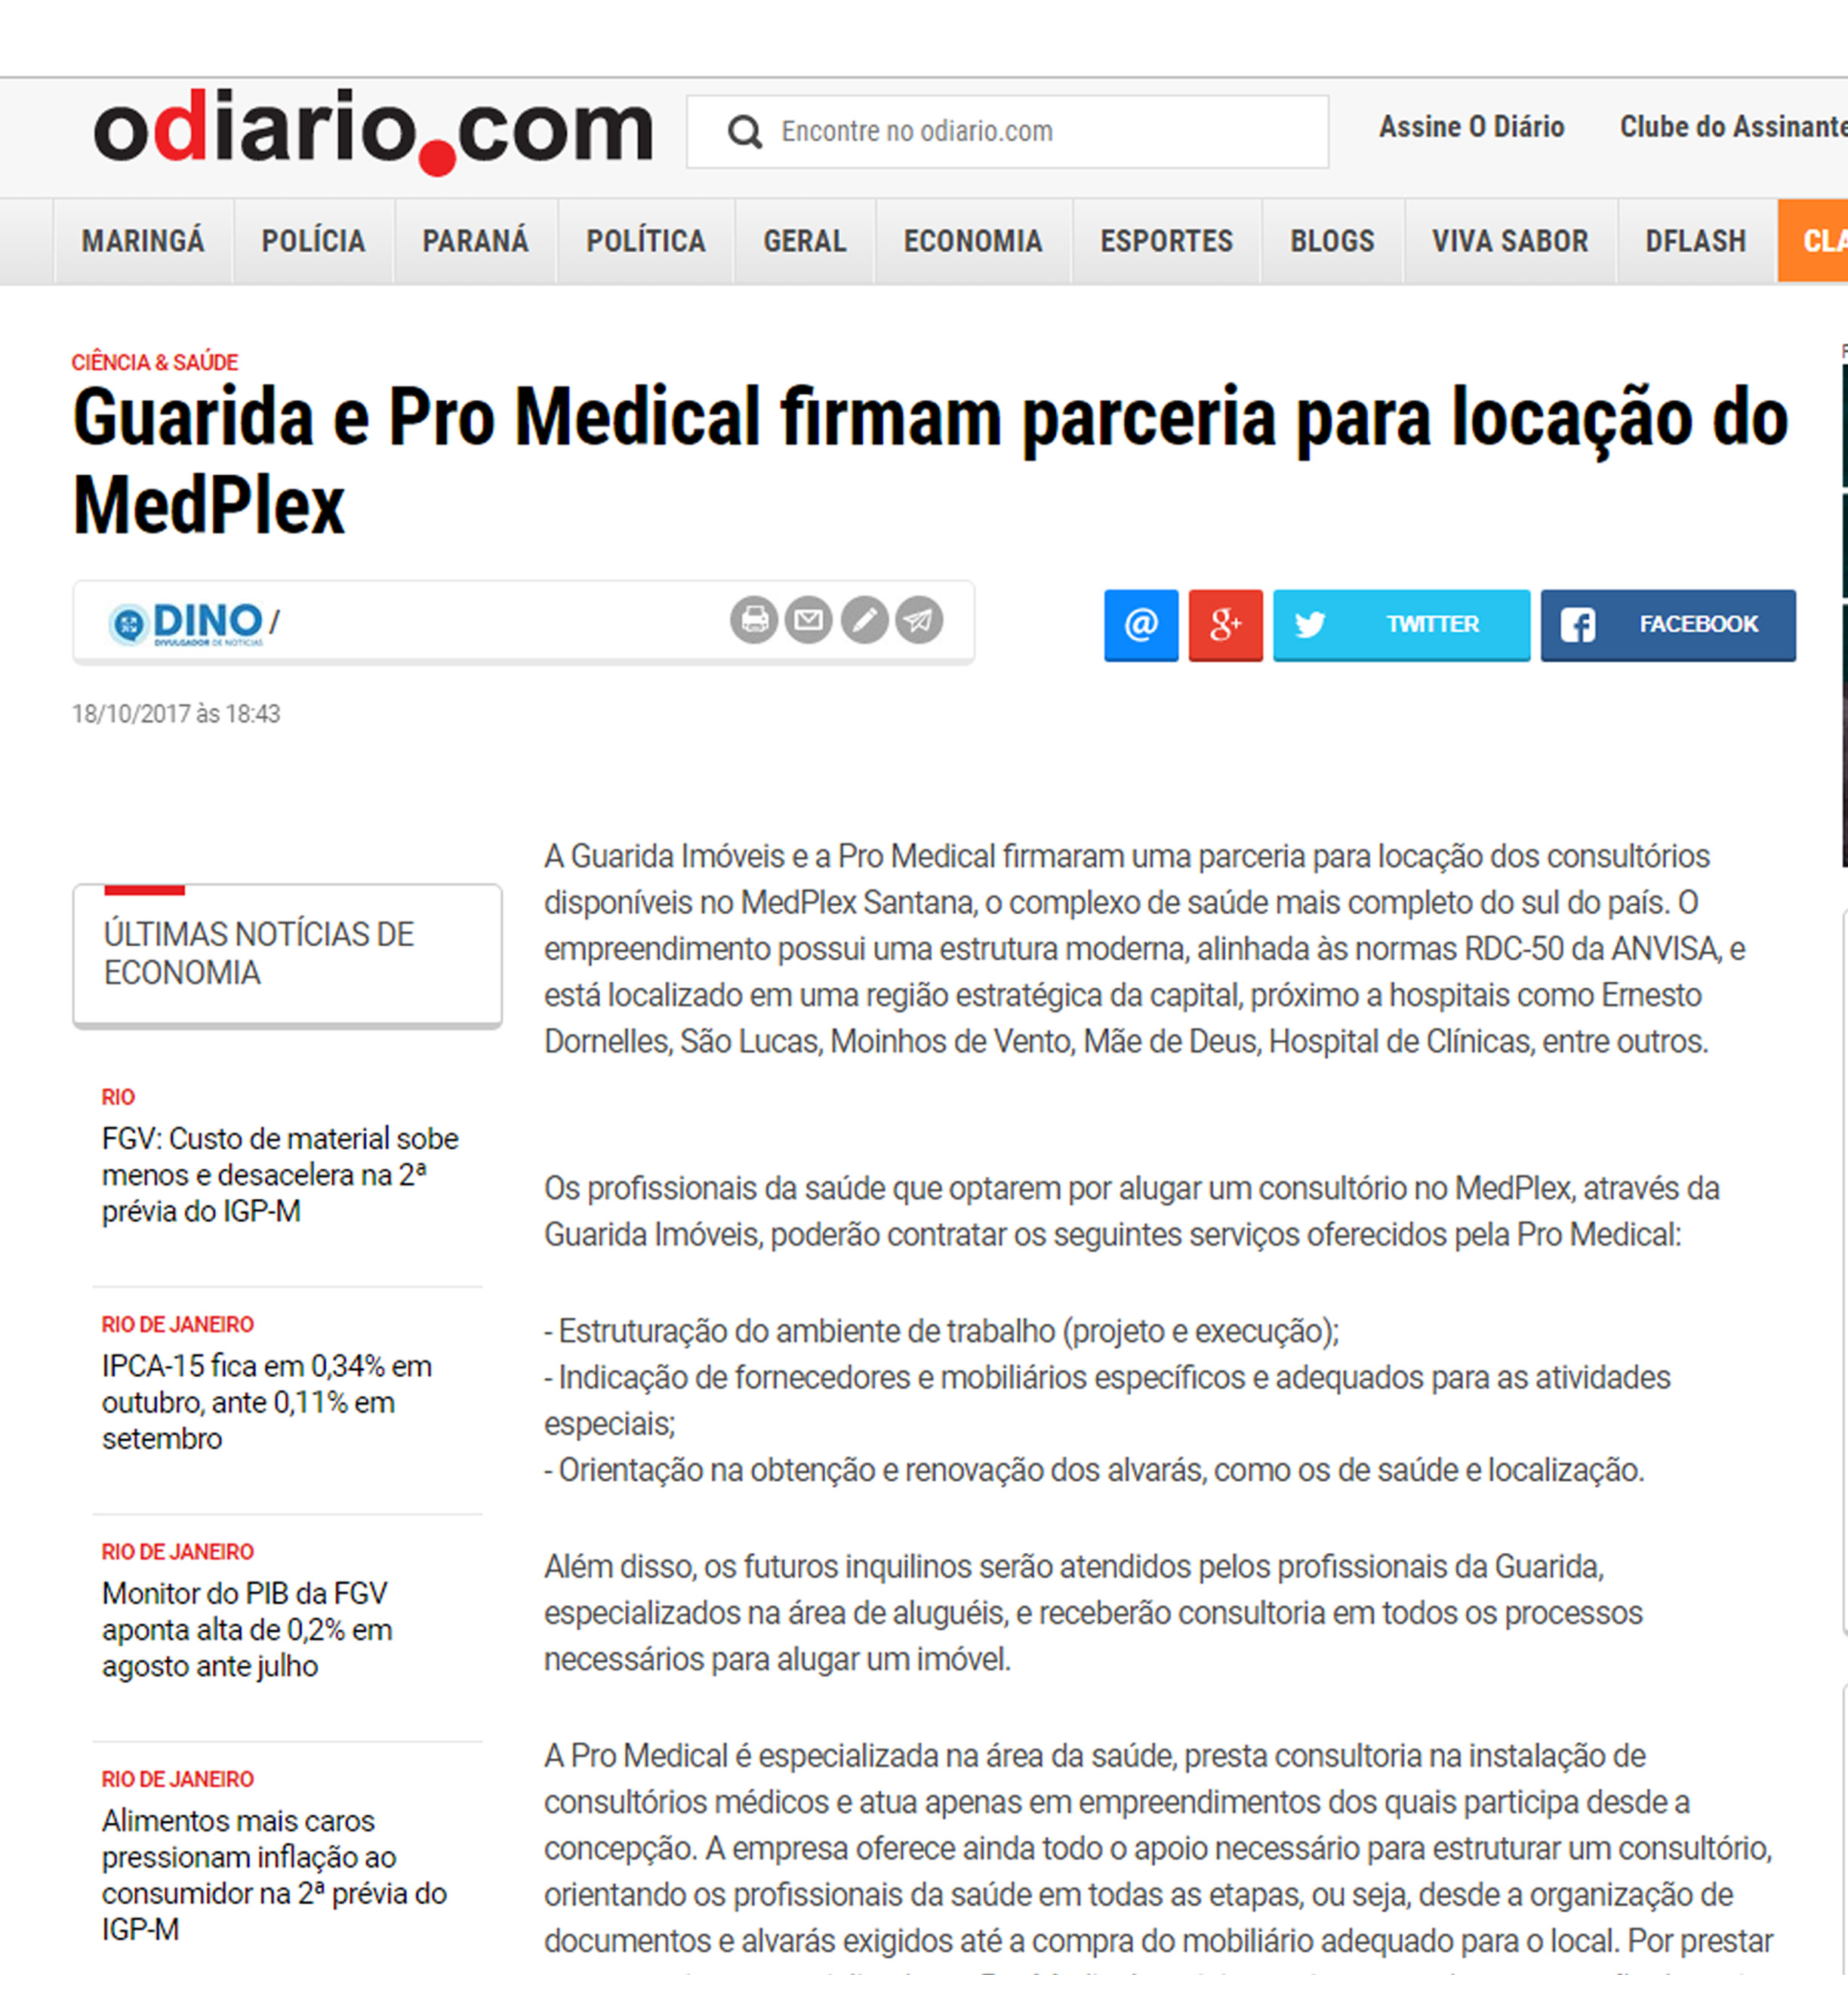 Guarida e Pro Medical